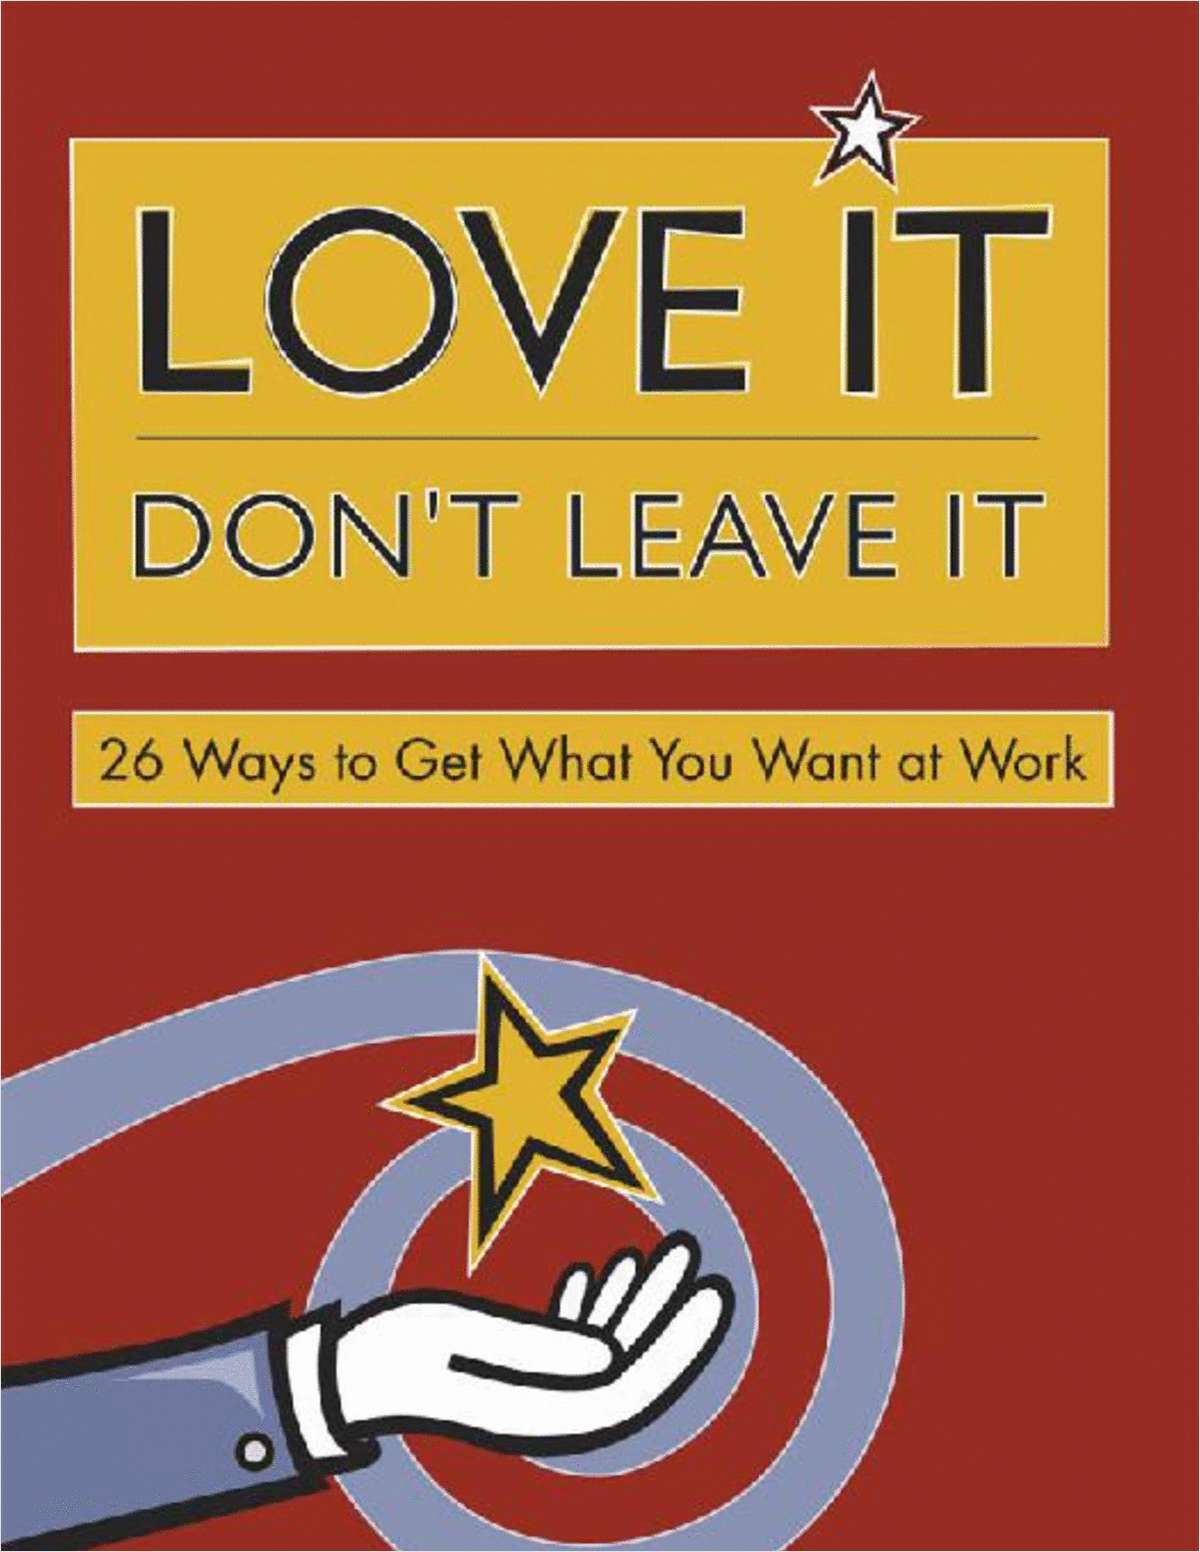 Love It Don't Leave It -- 26 Ways to Get What You Want at Work (FREE Excerpt)